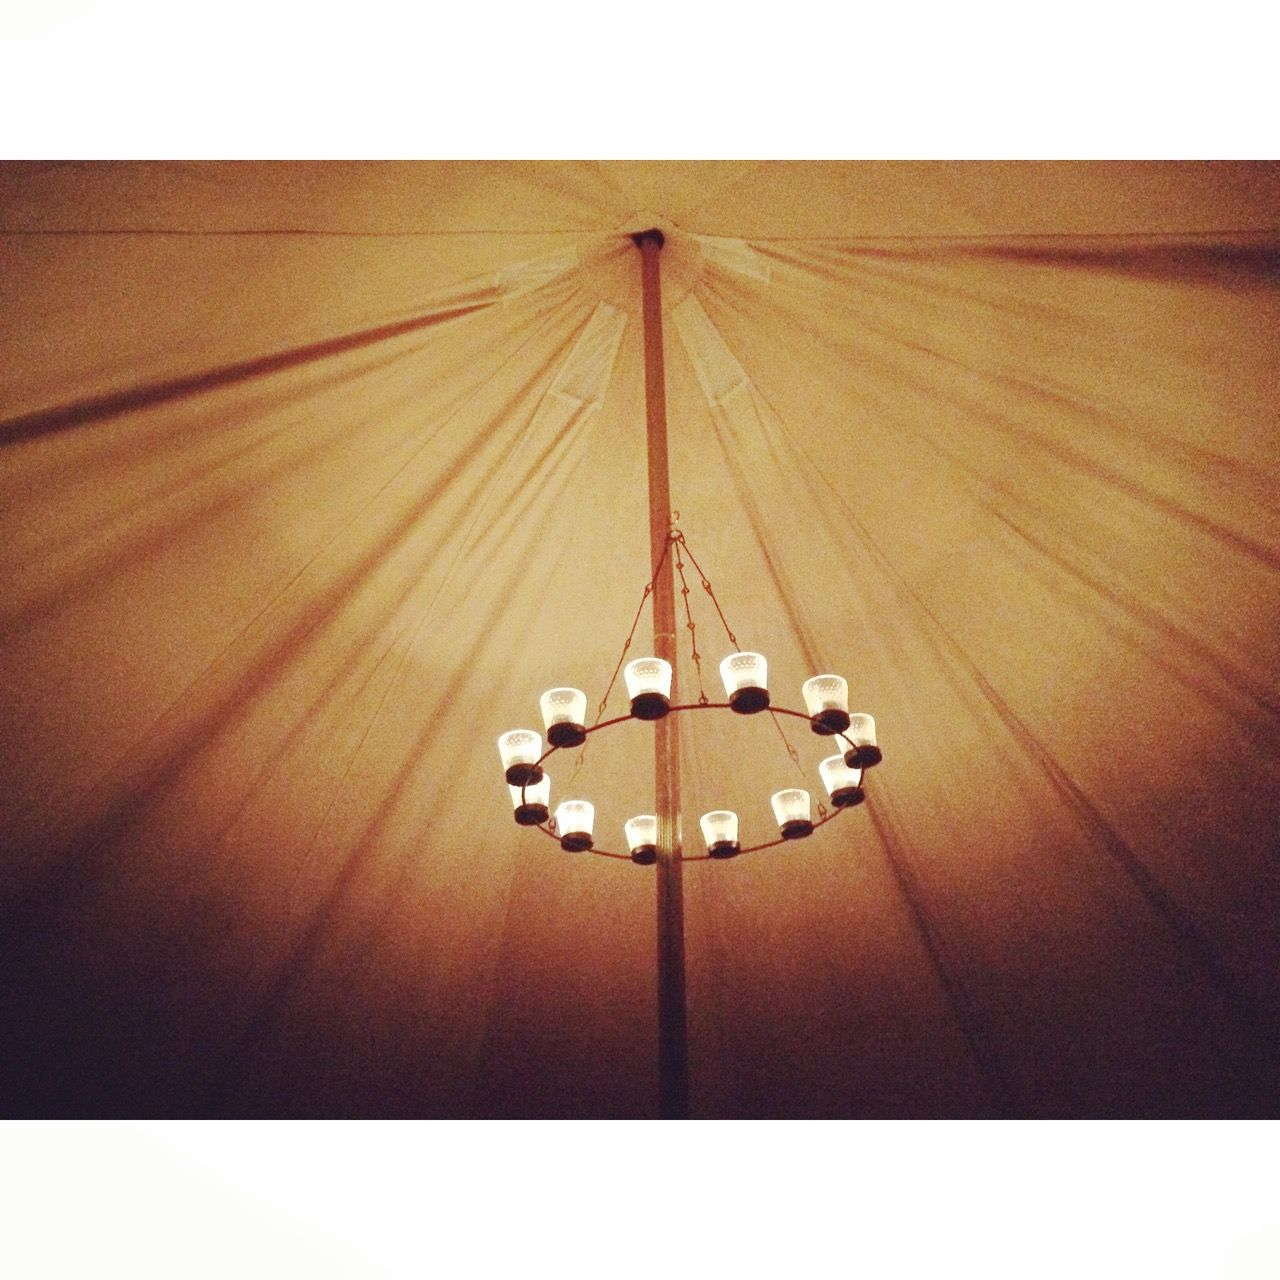 Chandelier Single Tier Camping Lights Best Tents For Camping Bell Tent